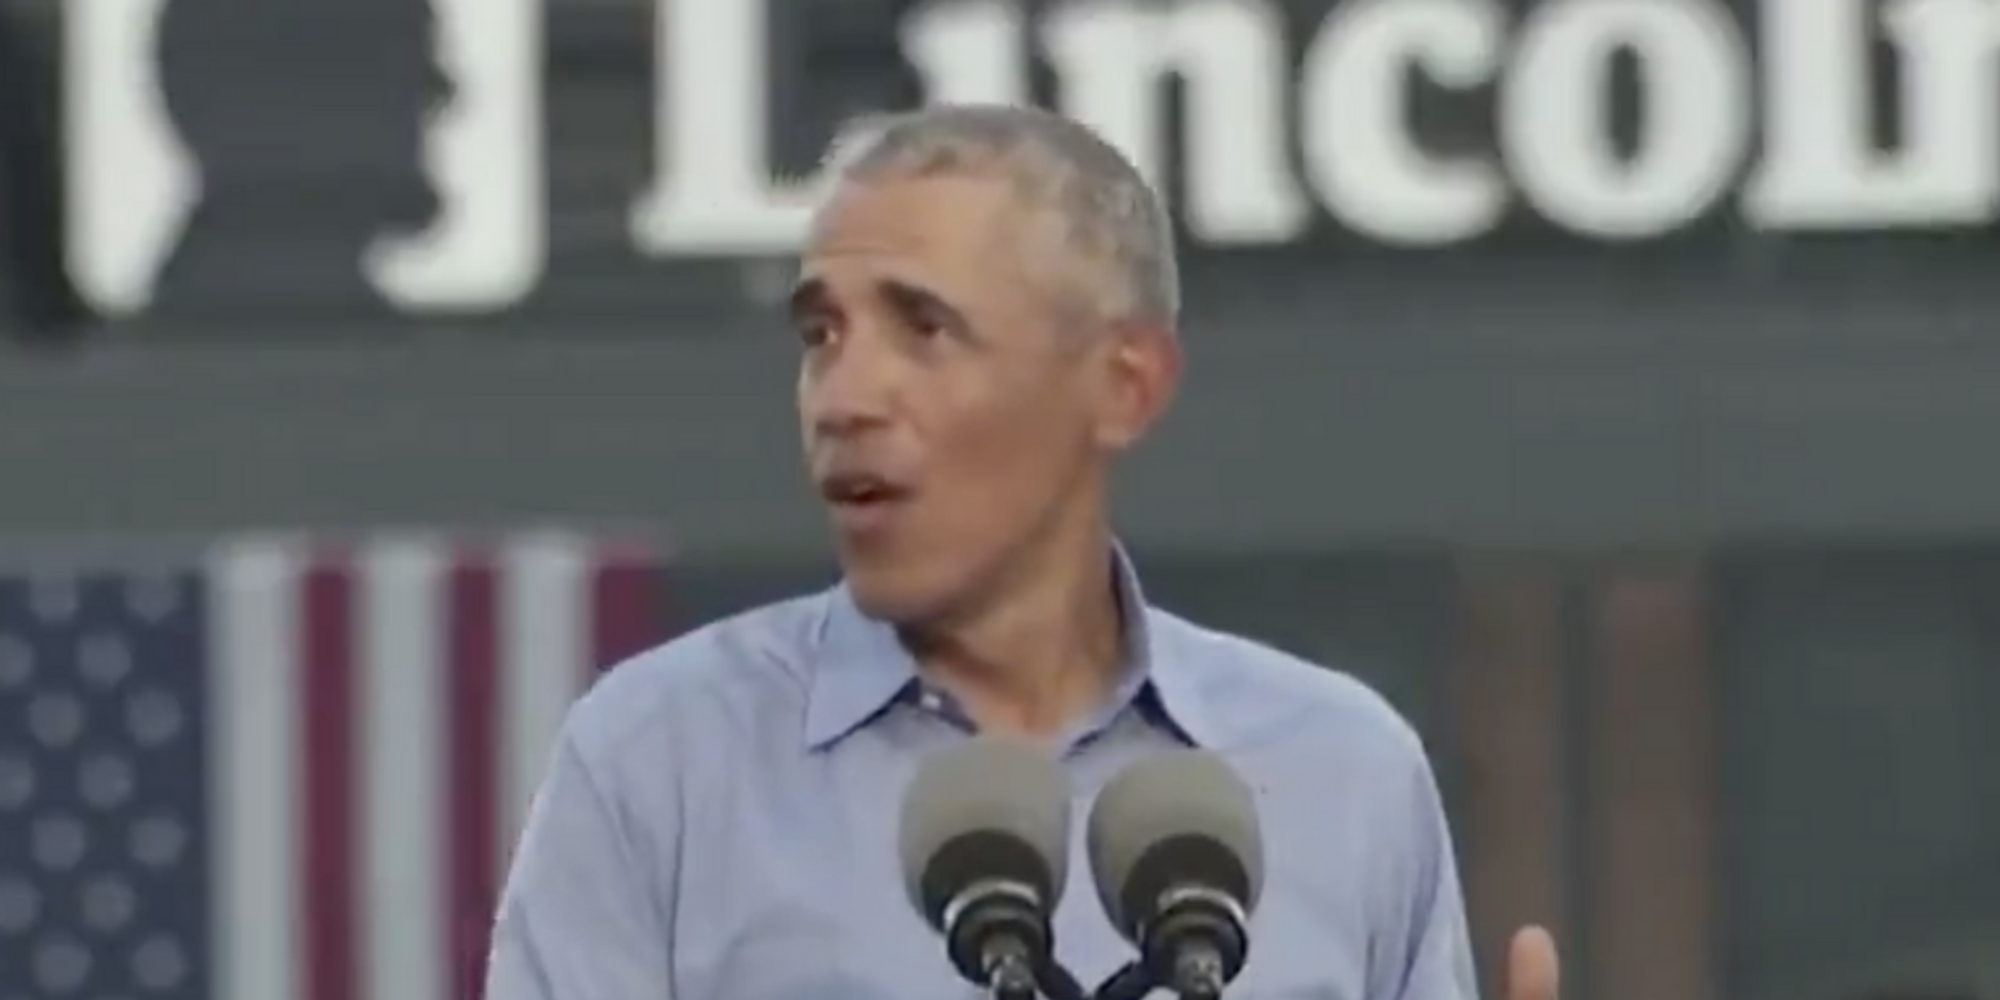 WATCH: Obama drowns Trump in a flood of mockery in a brutally hilarious speech